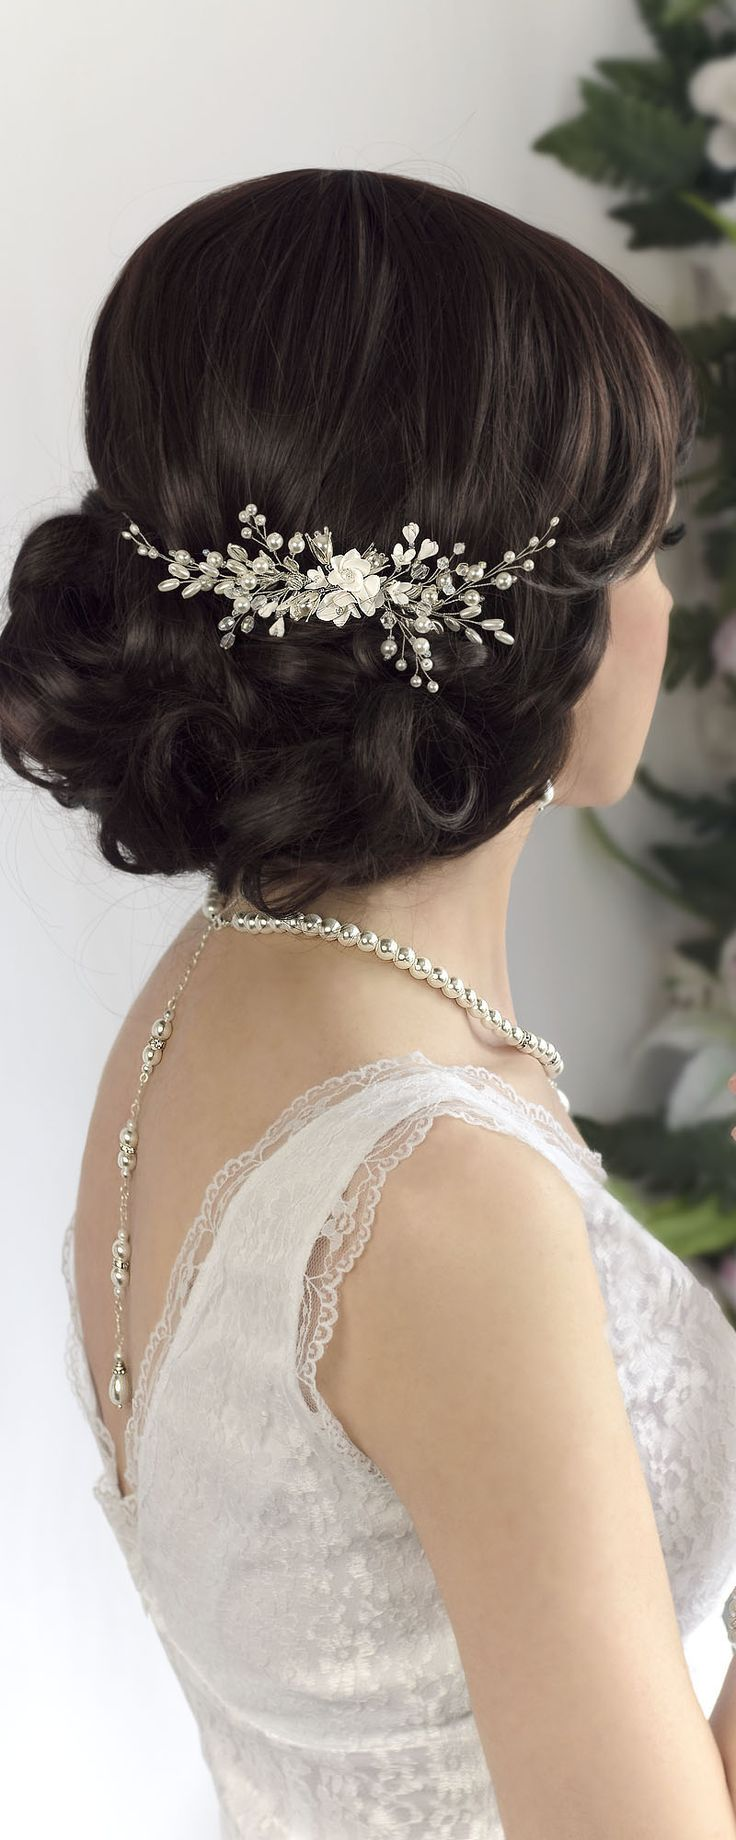 best 25+ wedding hair accessories ideas on pinterest | hairstyles